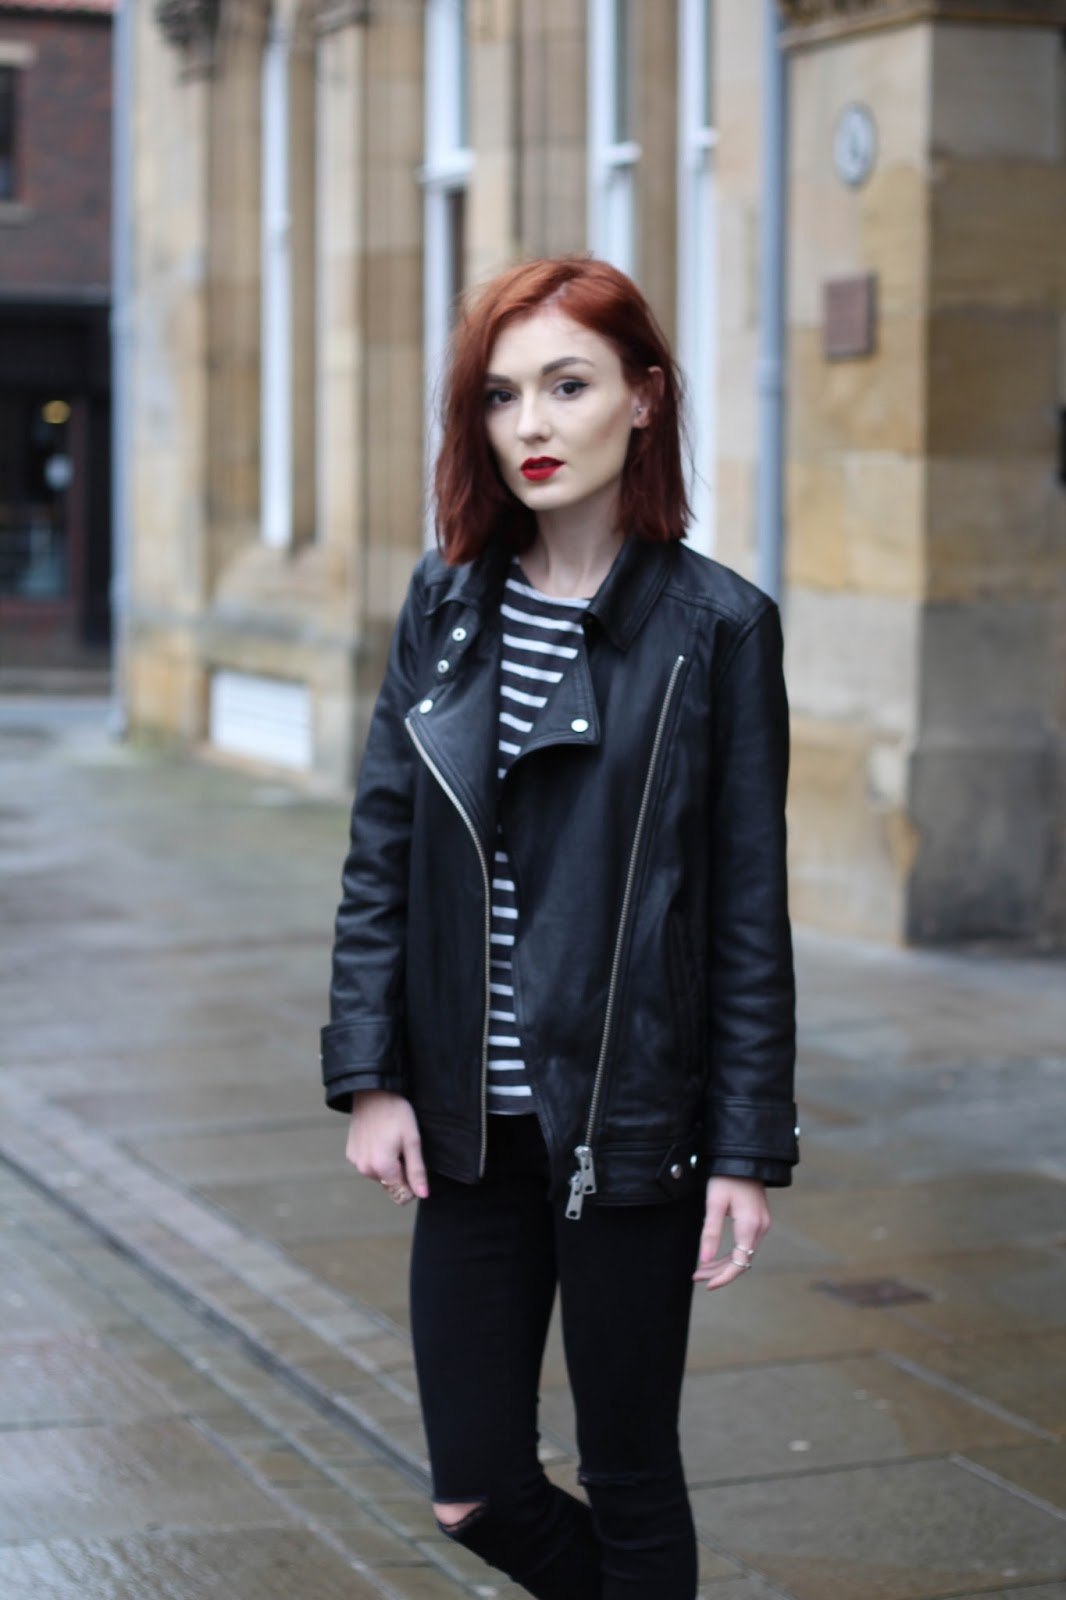 Leather jacket all saints -  Allsaints Black Ryder Leather Jacket C O John Lewis Black Patent Ankle Boots C O New Look Black Ripped Skinny Jeans Asos Similar Striped Top